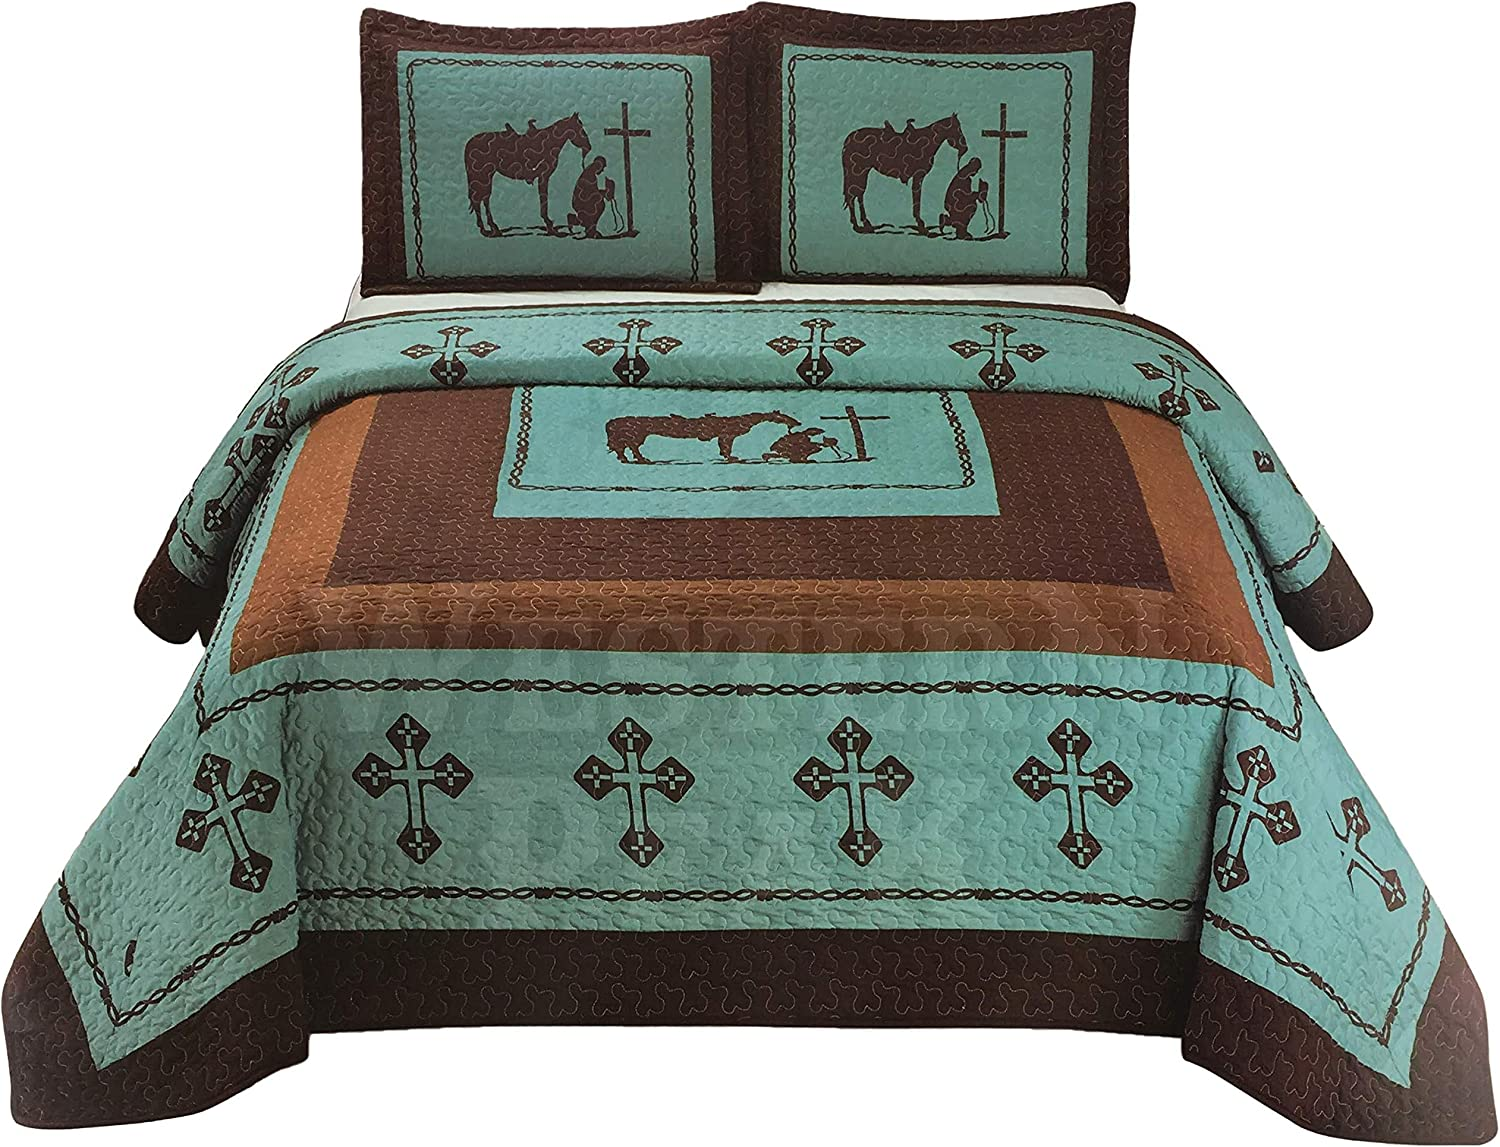 Western Peak 3 Pc Luxury Western Texas Cross Praying Cowboy Horse Cabin Lodge Barbed Wire Luxury Quilt Bedspread Oversize Comforter (Oversize Queen, Turquoise Teal)